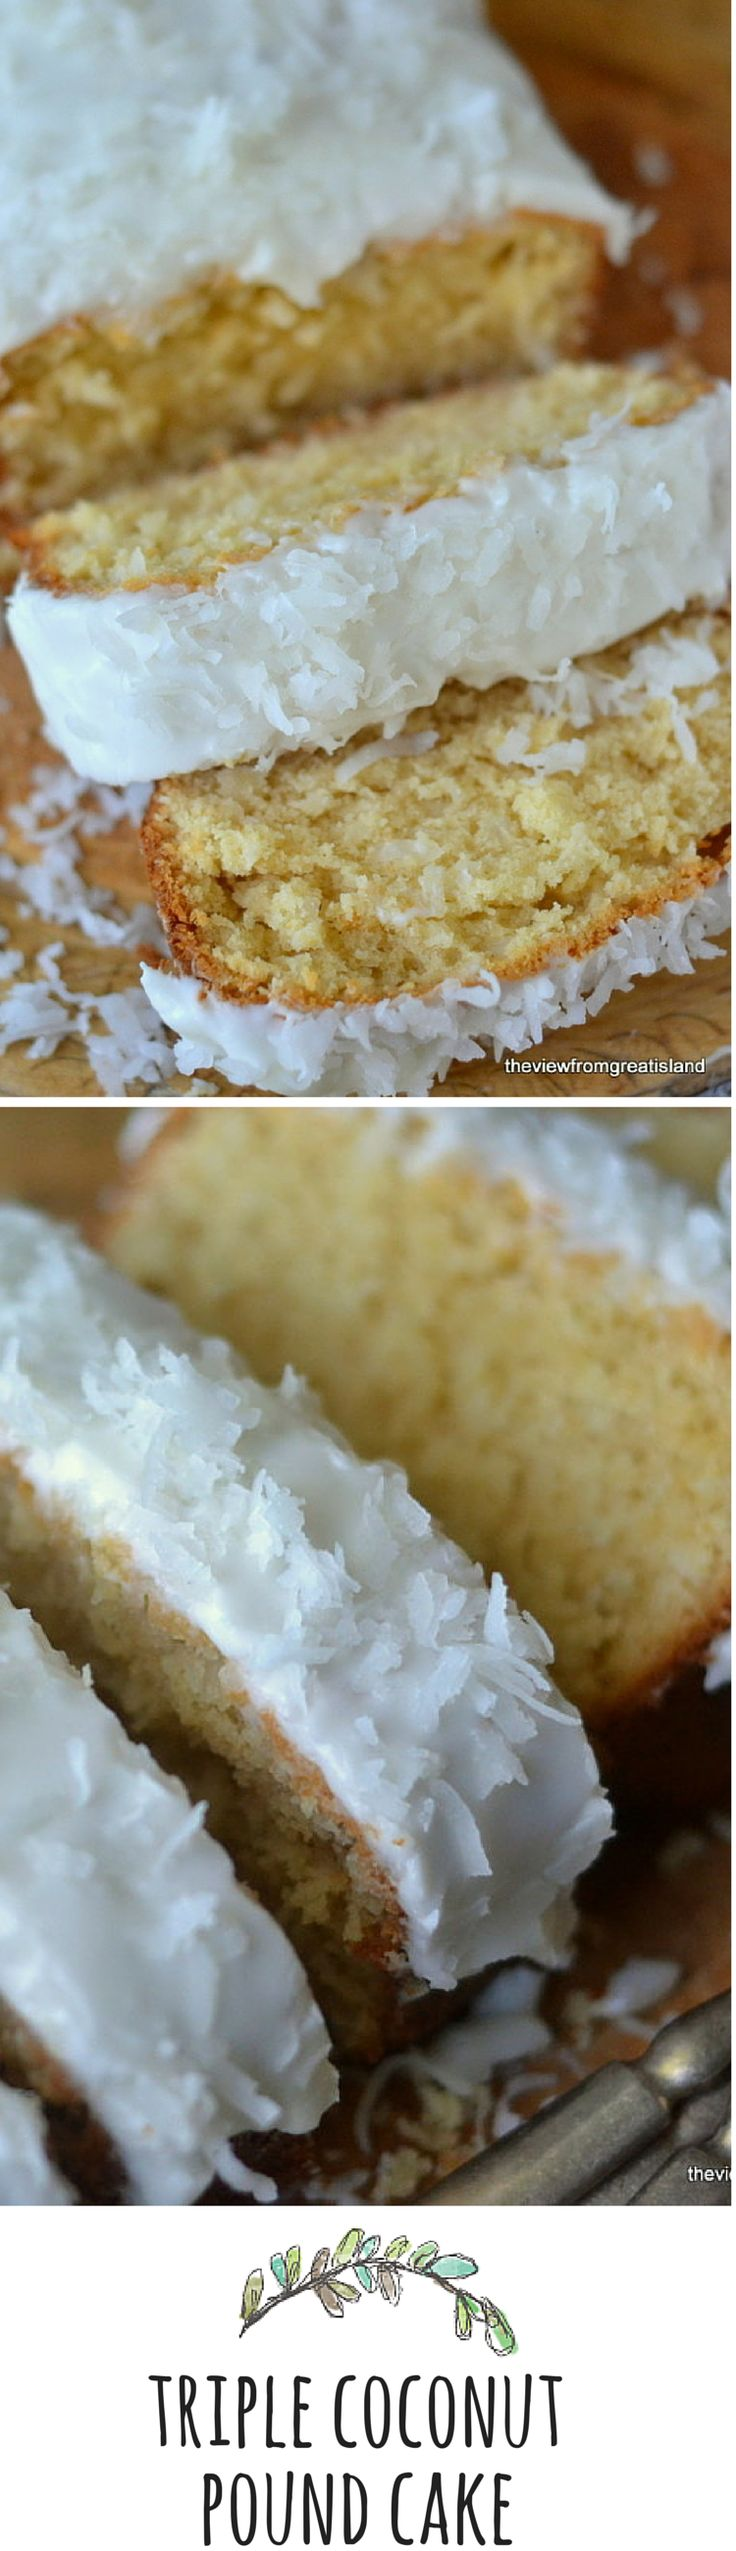 ~~Triple Coconut Pound Cake | be still my heart! This is a must for any coconut lover | The View from Great Island~~